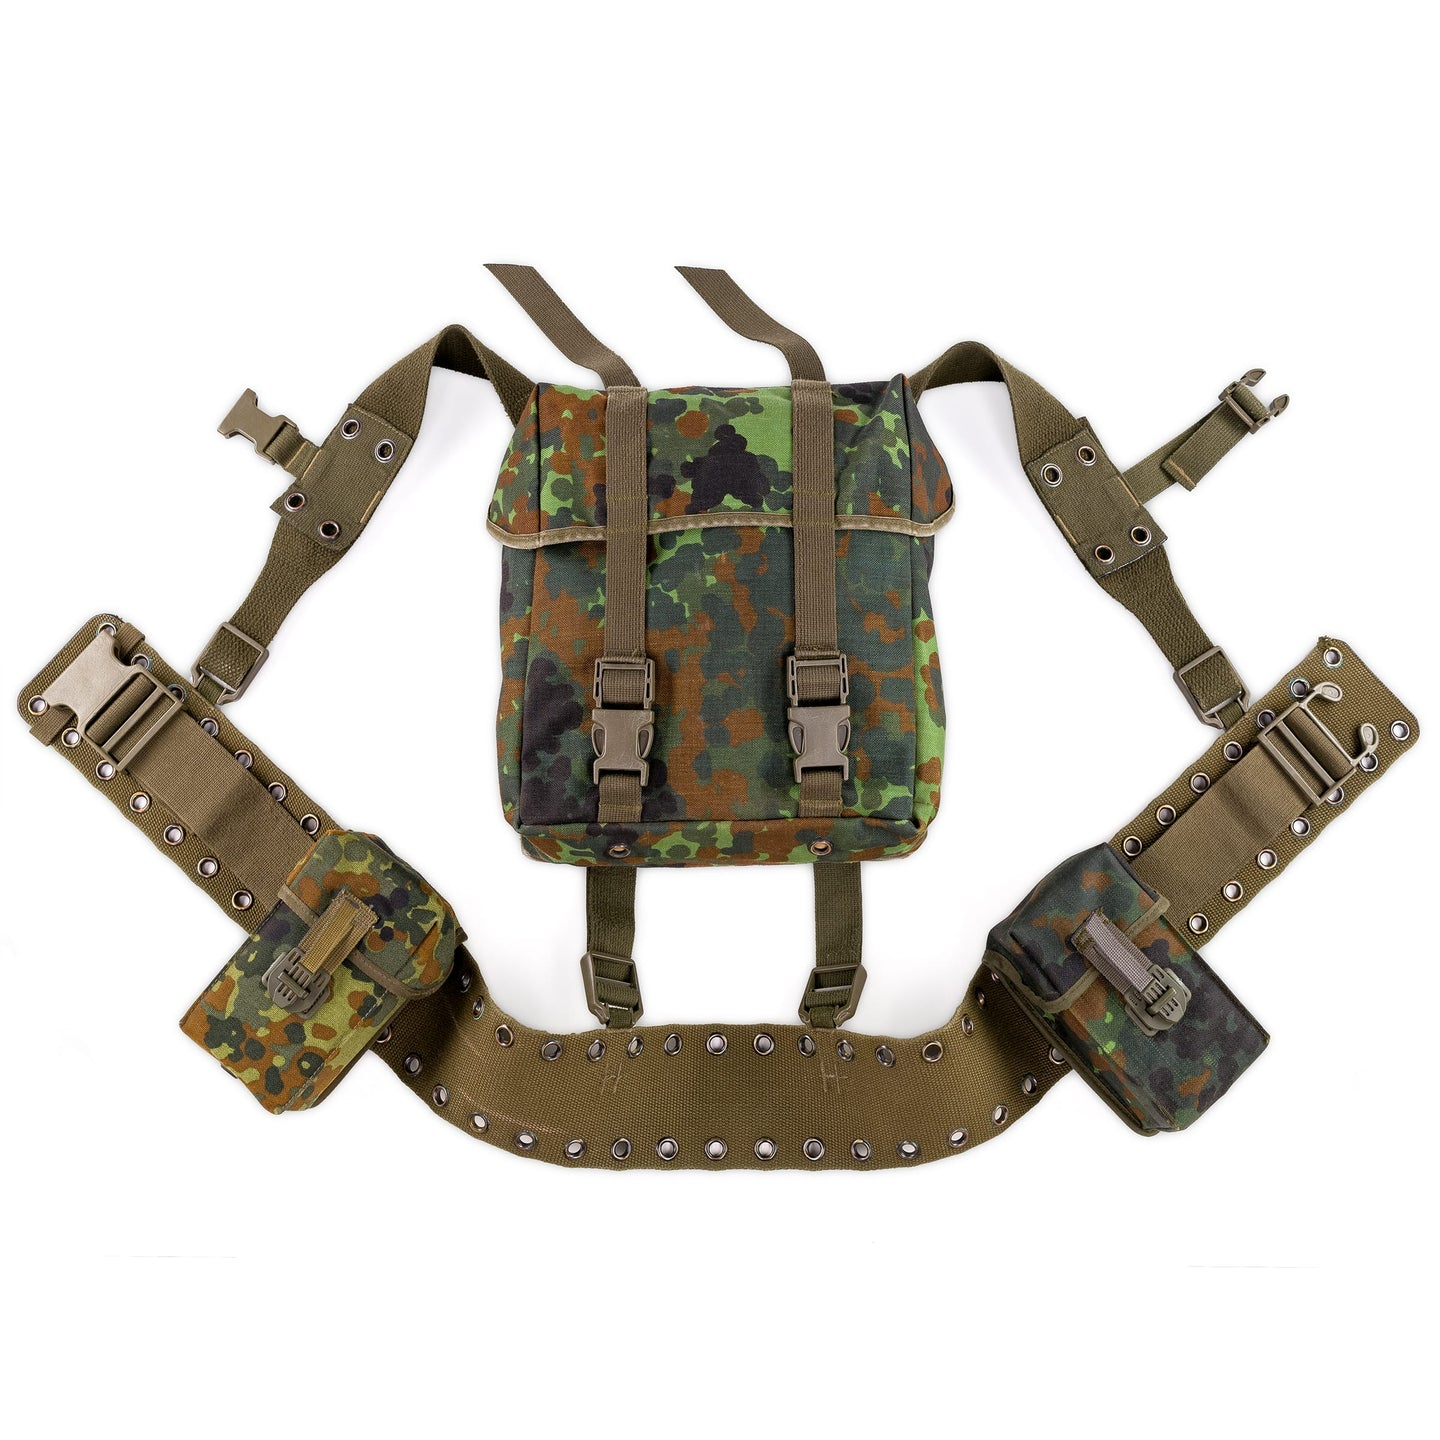 German Flecktarn LKS Load Bearing System